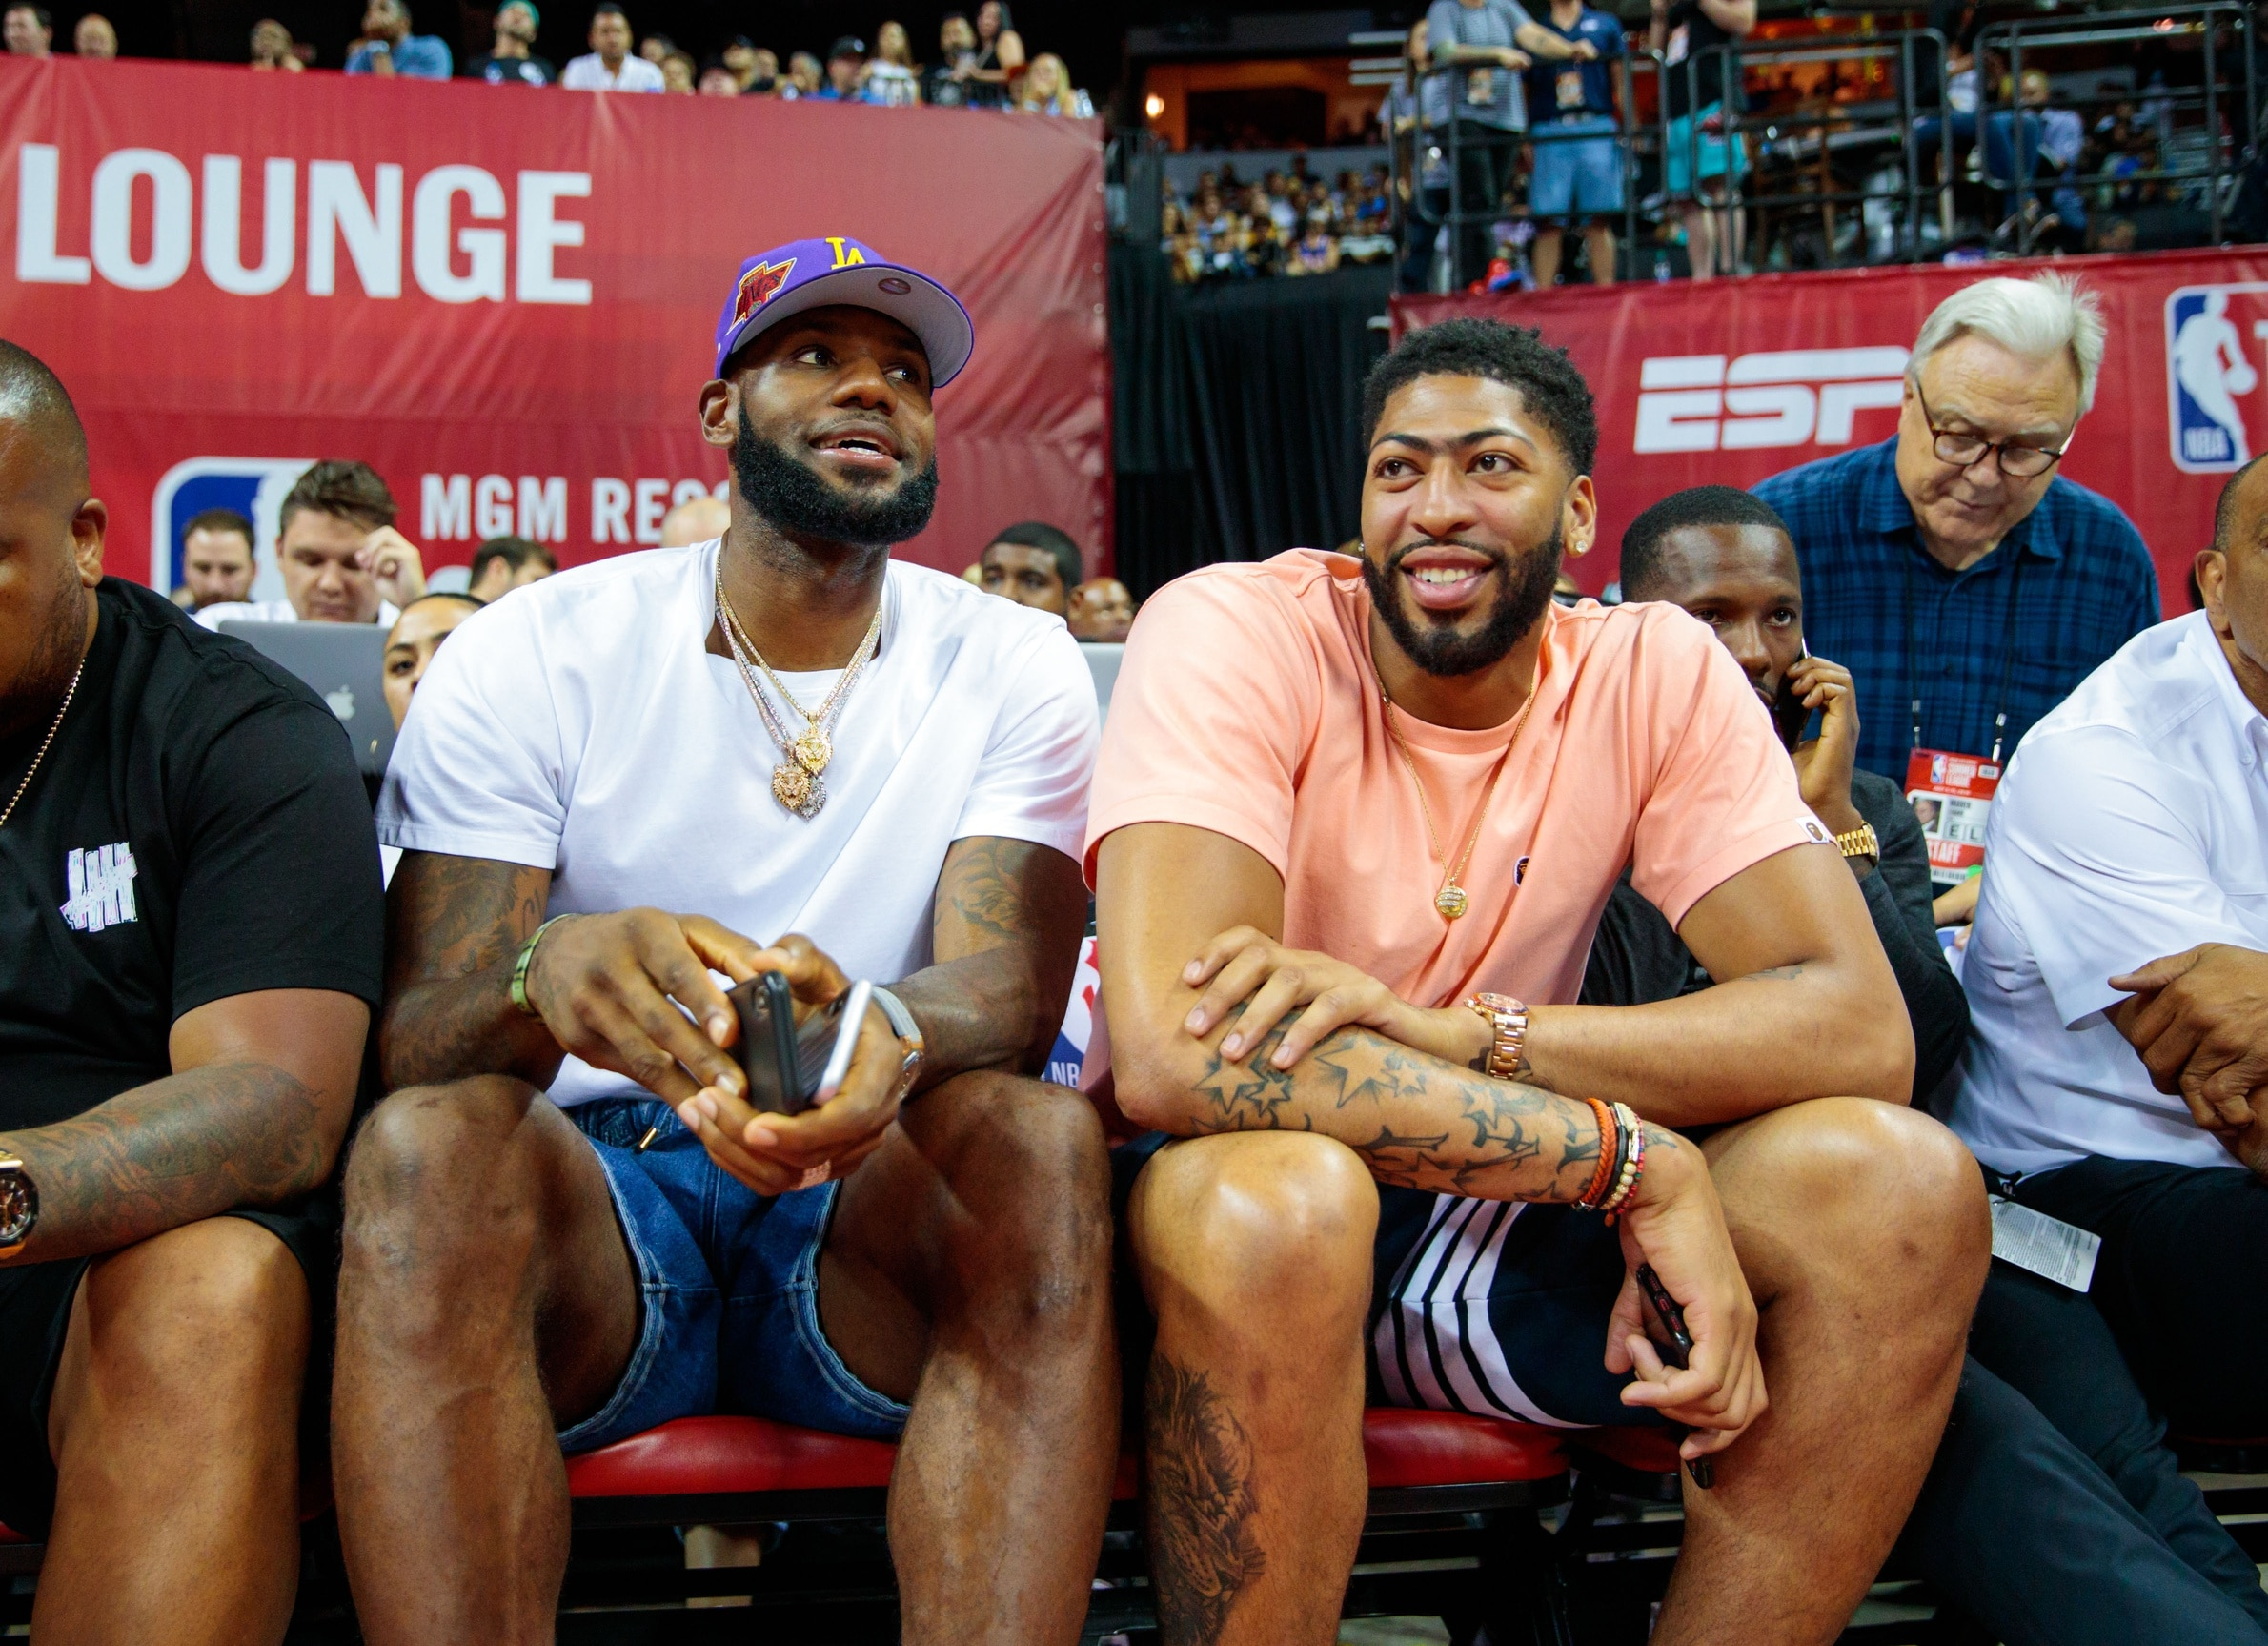 Christmas Day Nba Games 2019.Ranking Nba Christmas Day Games By Appeal